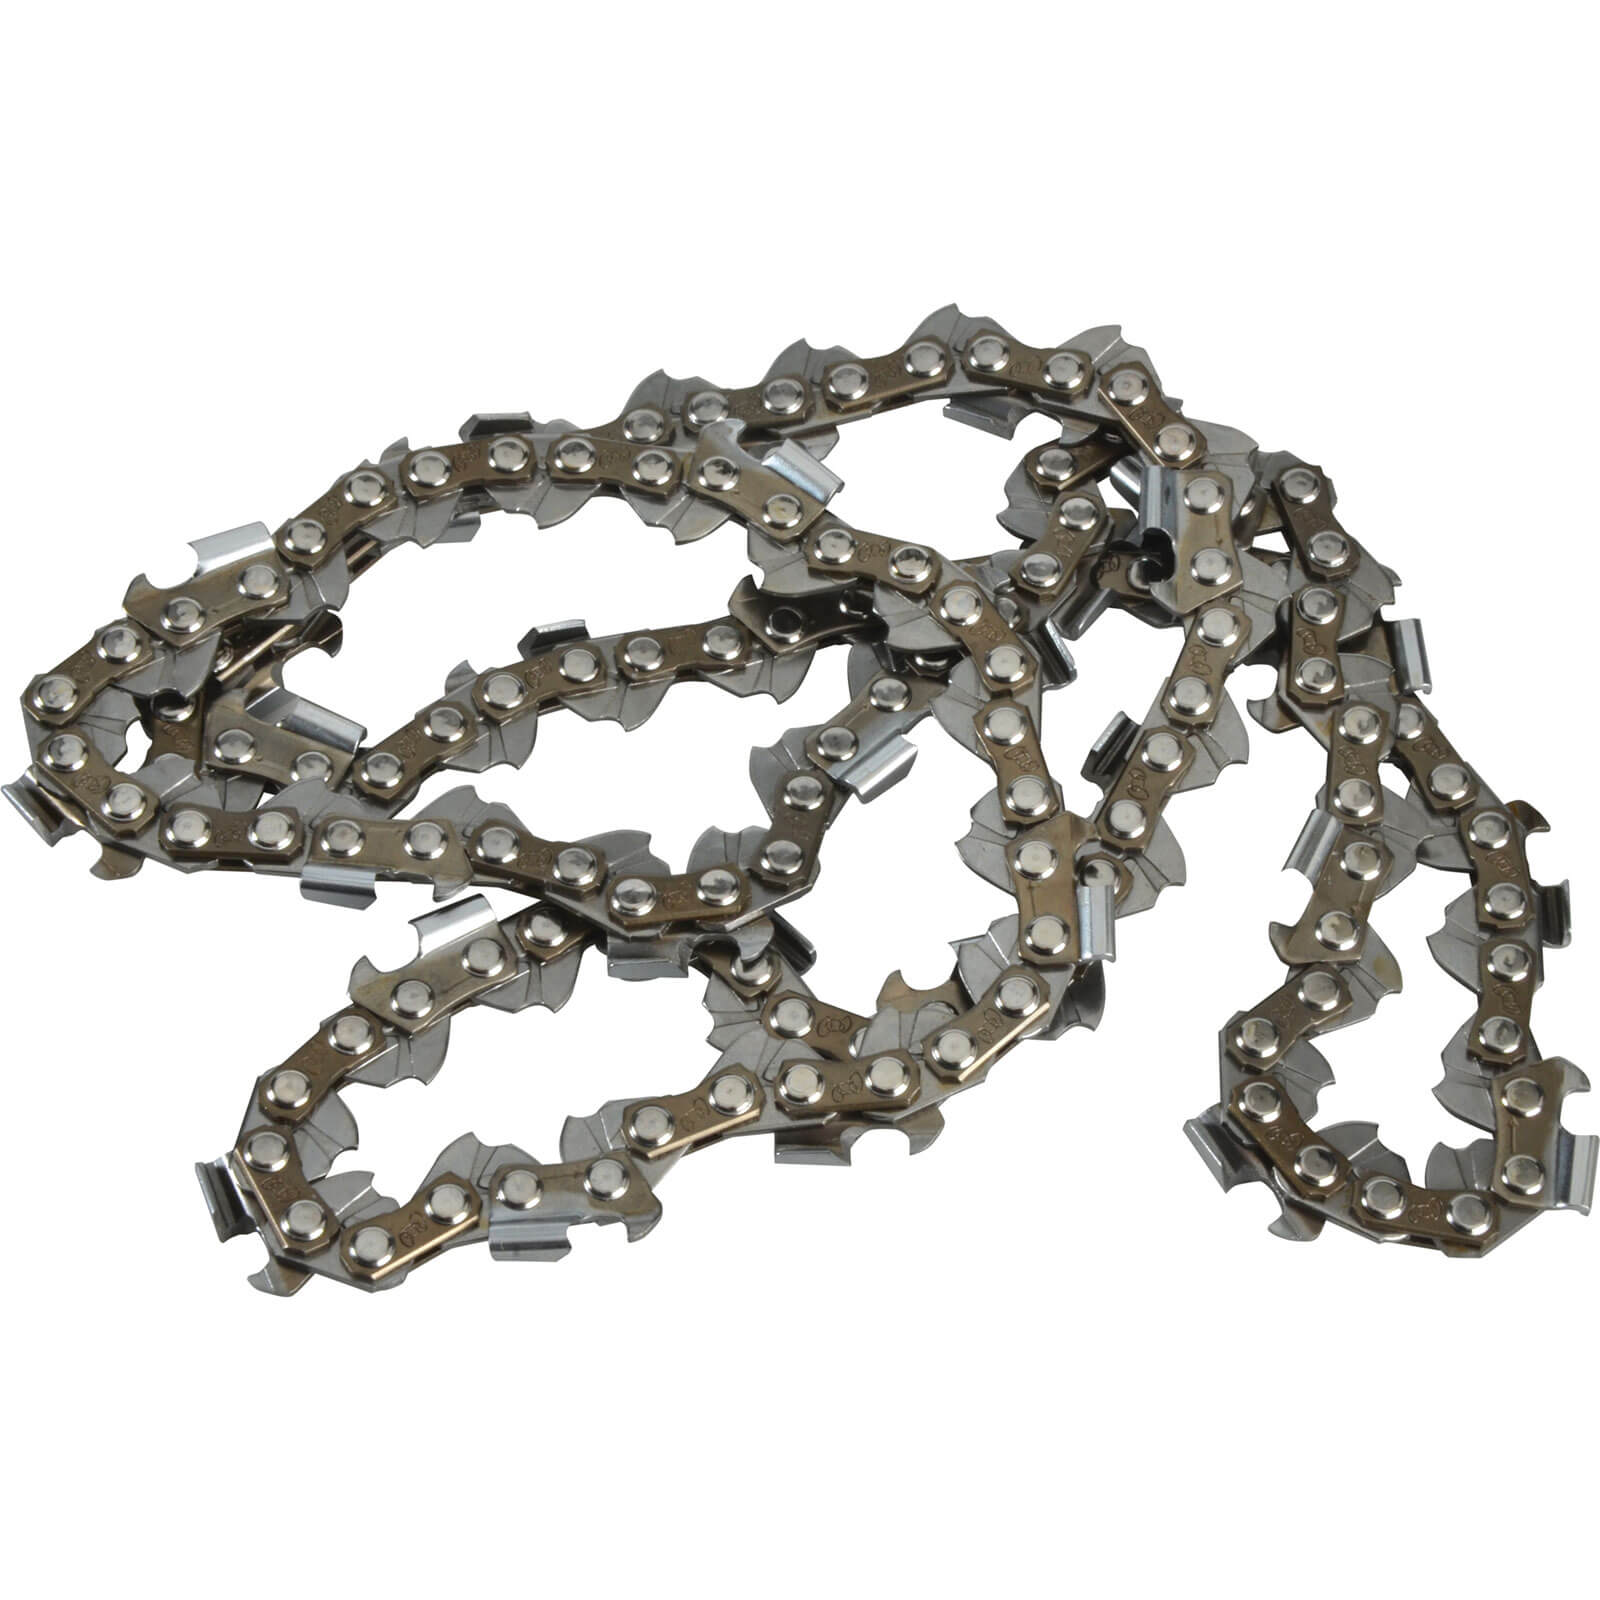 ALM Manufacturing CH066 Replacement Chainsaw Chain Fits Saws with a 40cm Bar and 66 Drive Links